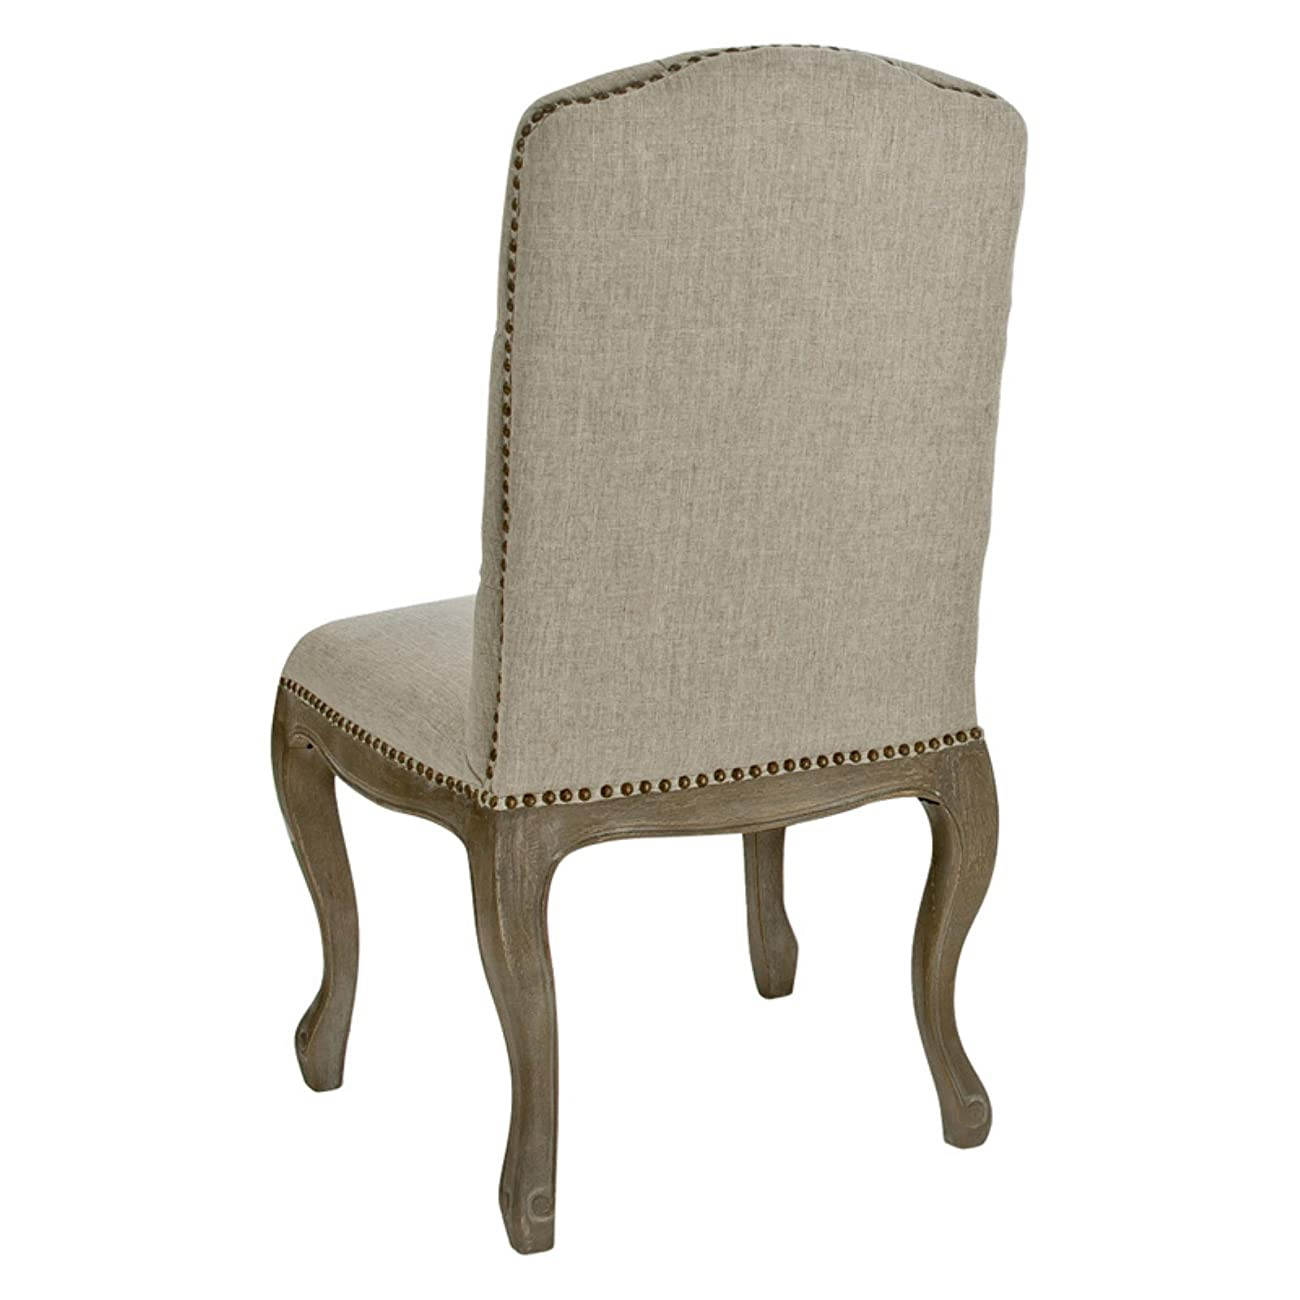 Best Selling Tufted Fabric Weathered Hardwood Dining Chair